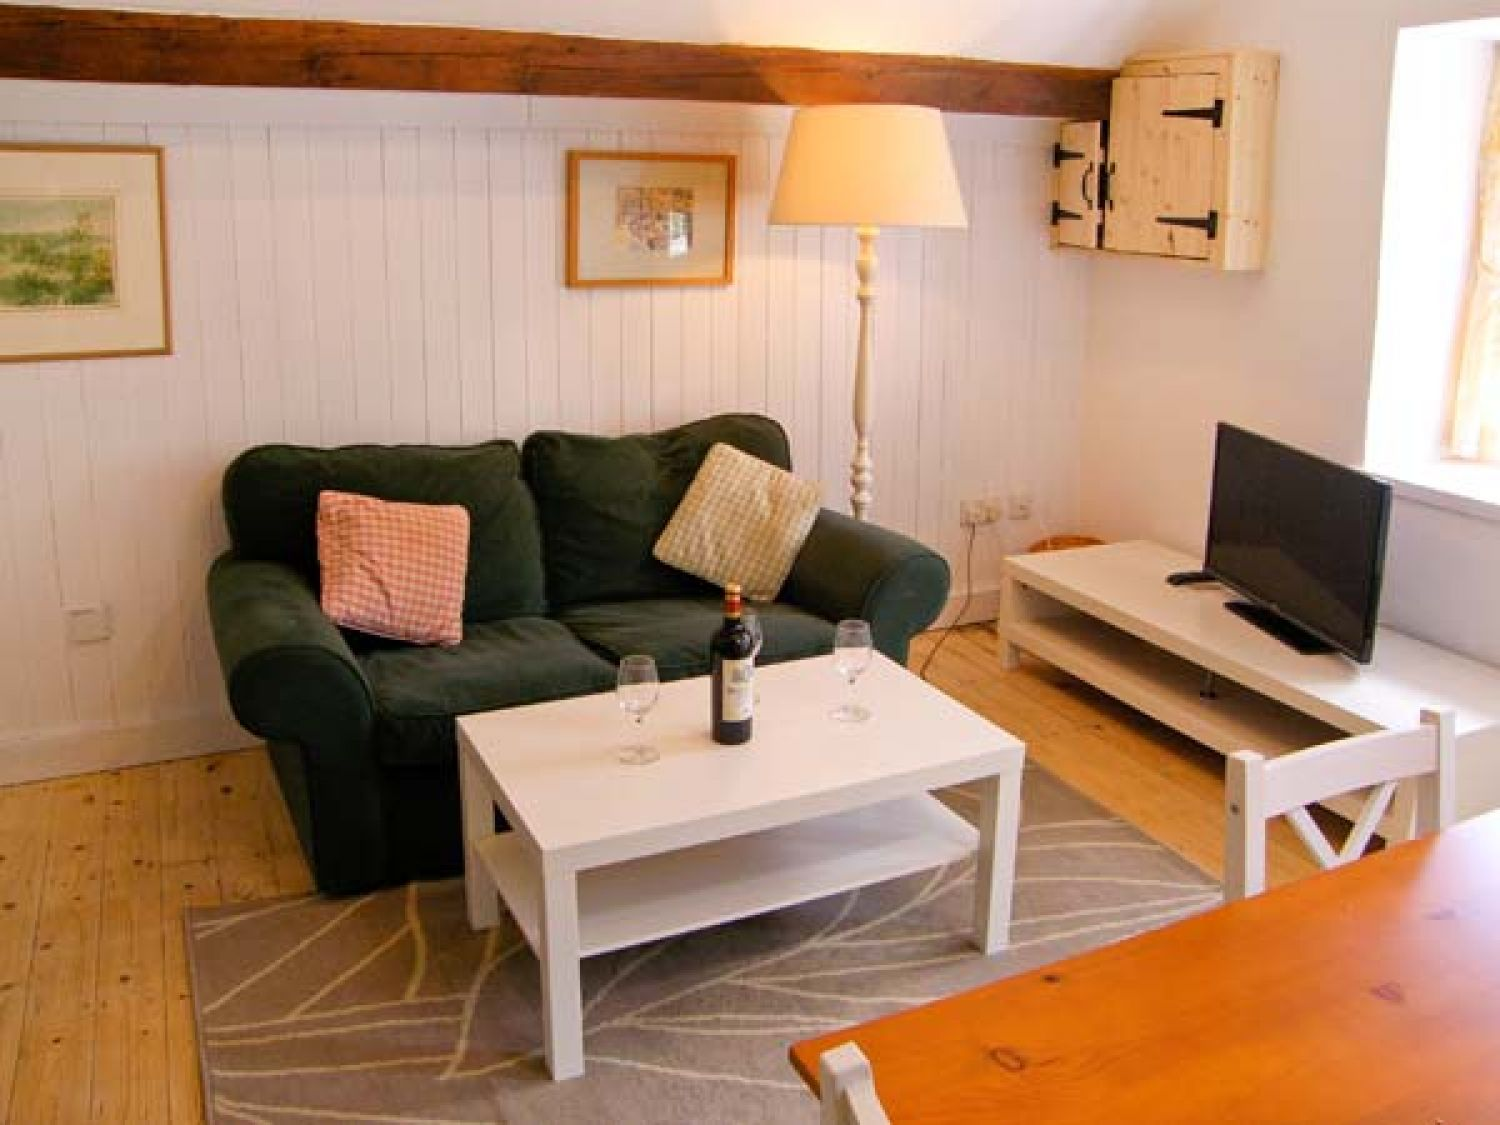 The Old Stable in Sherborne - sleeps 3 people